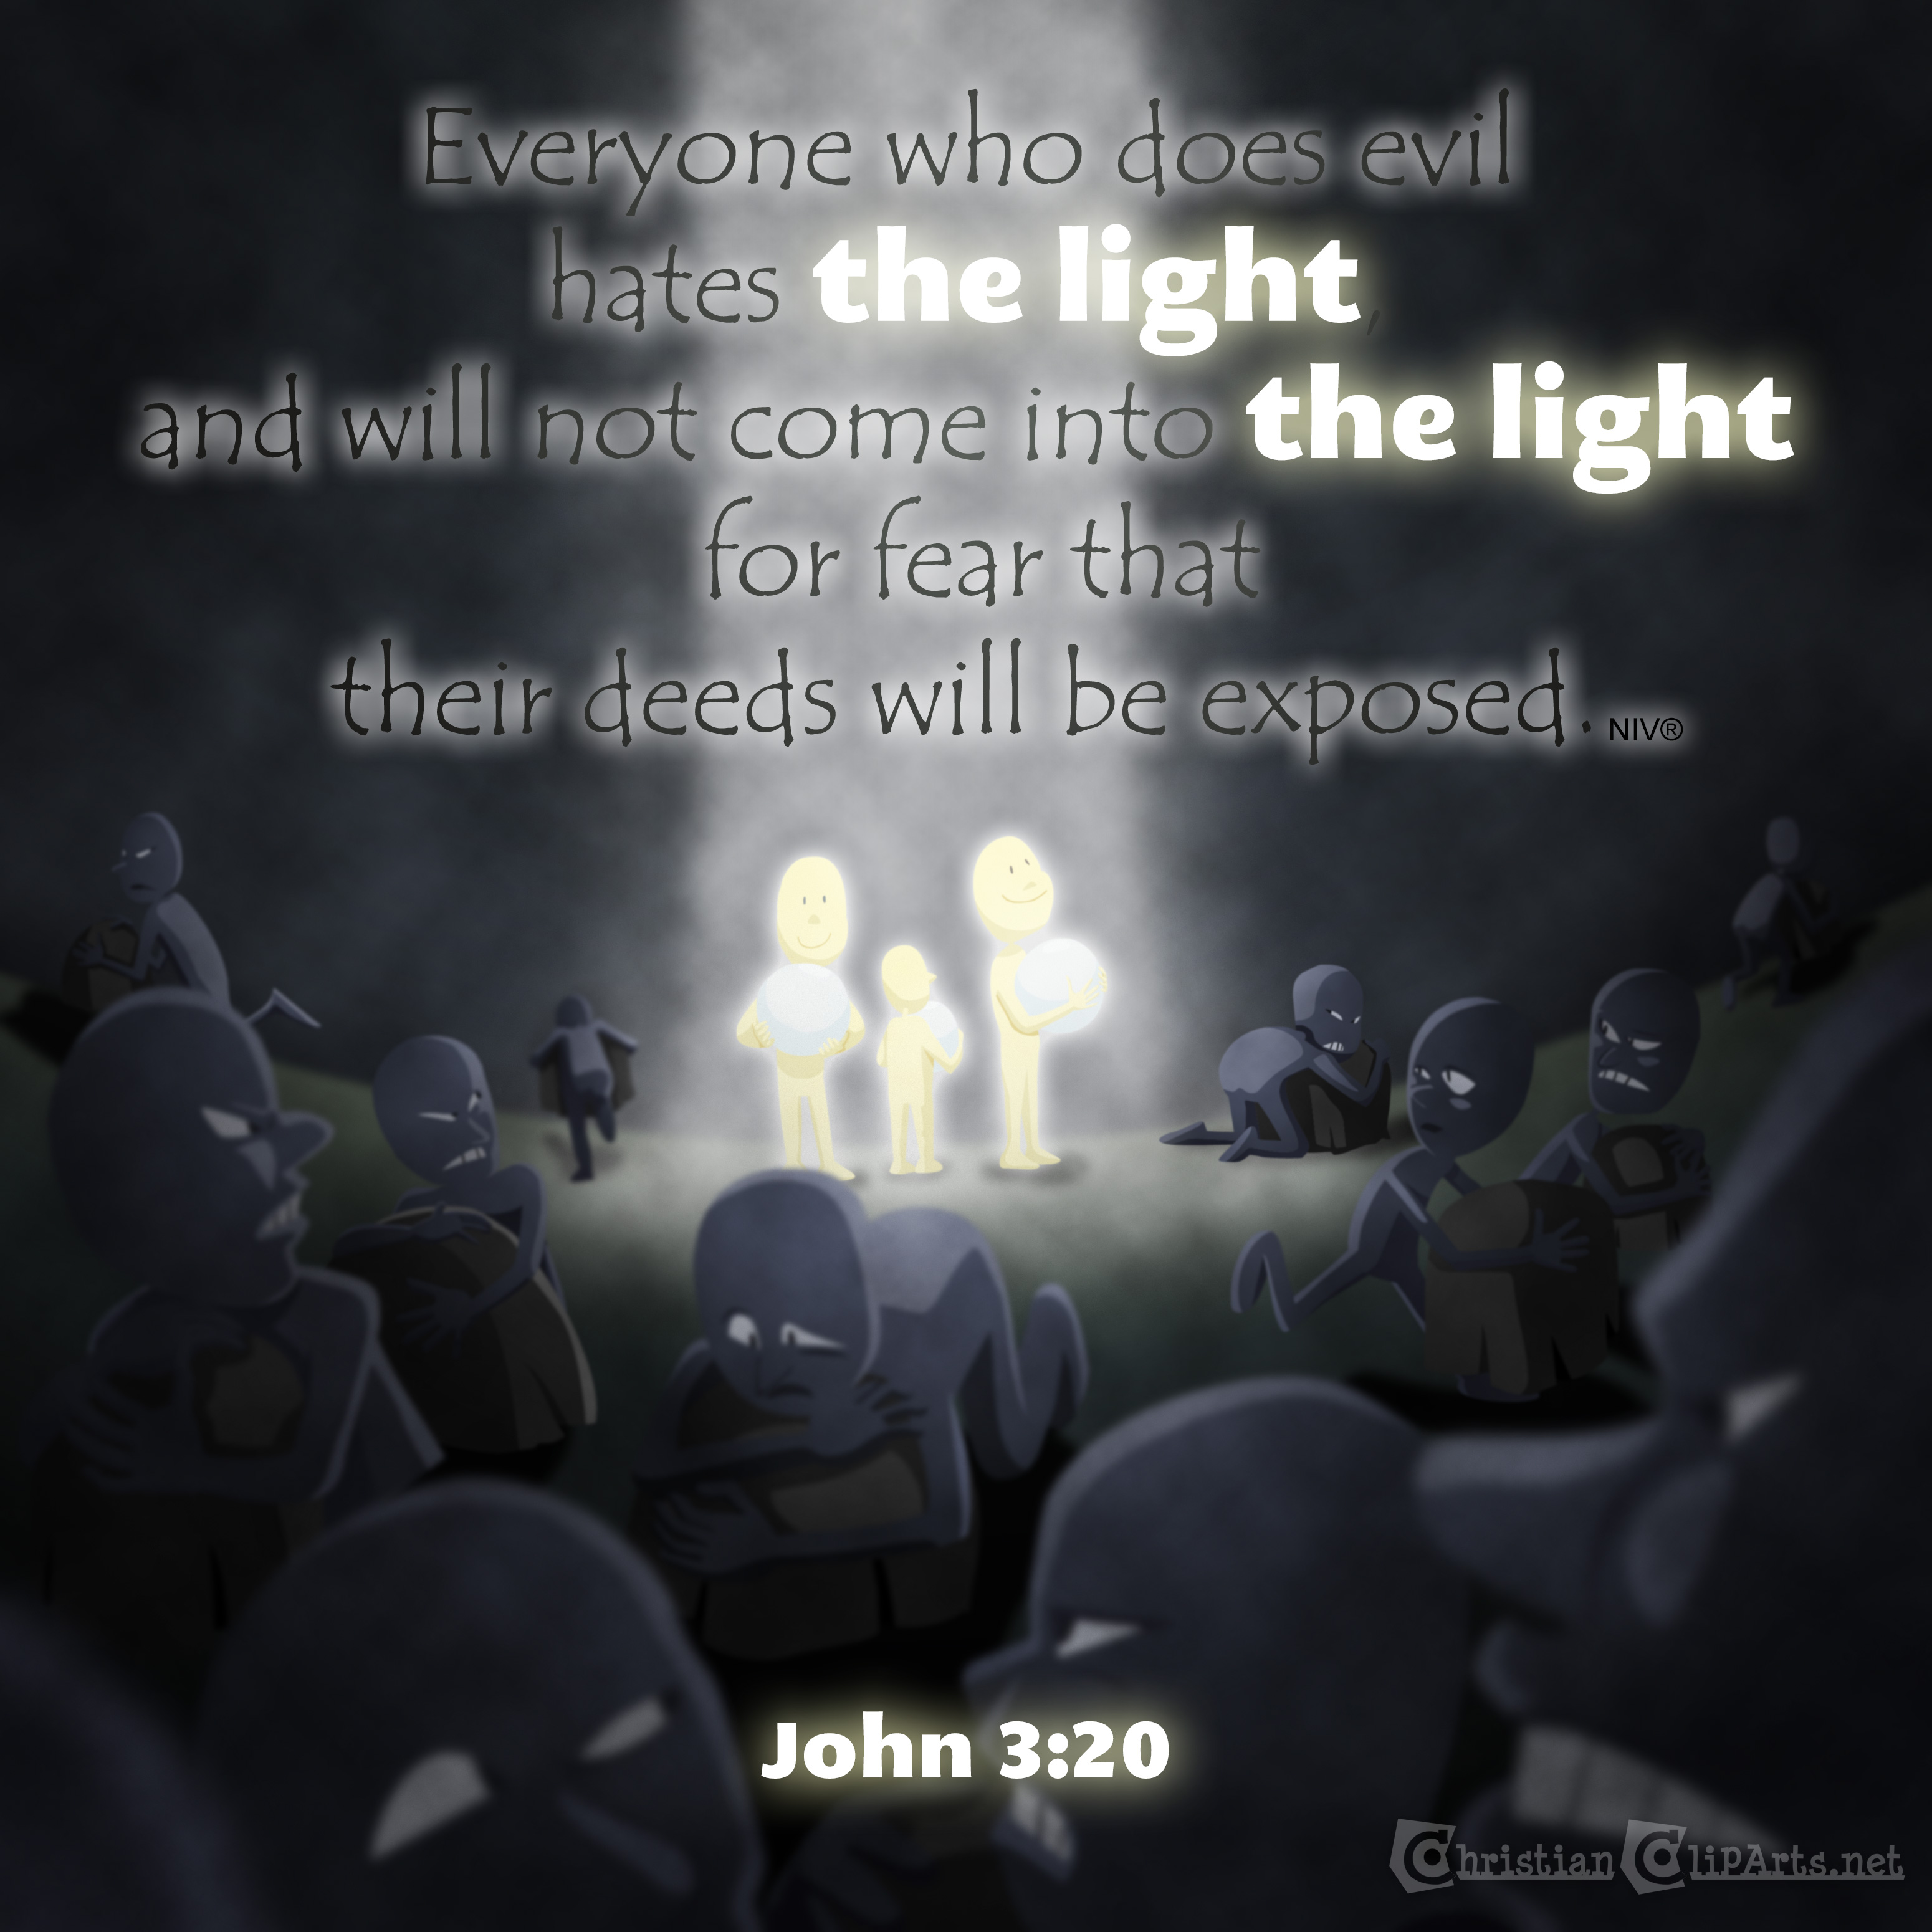 Everyone who does evil hates the light